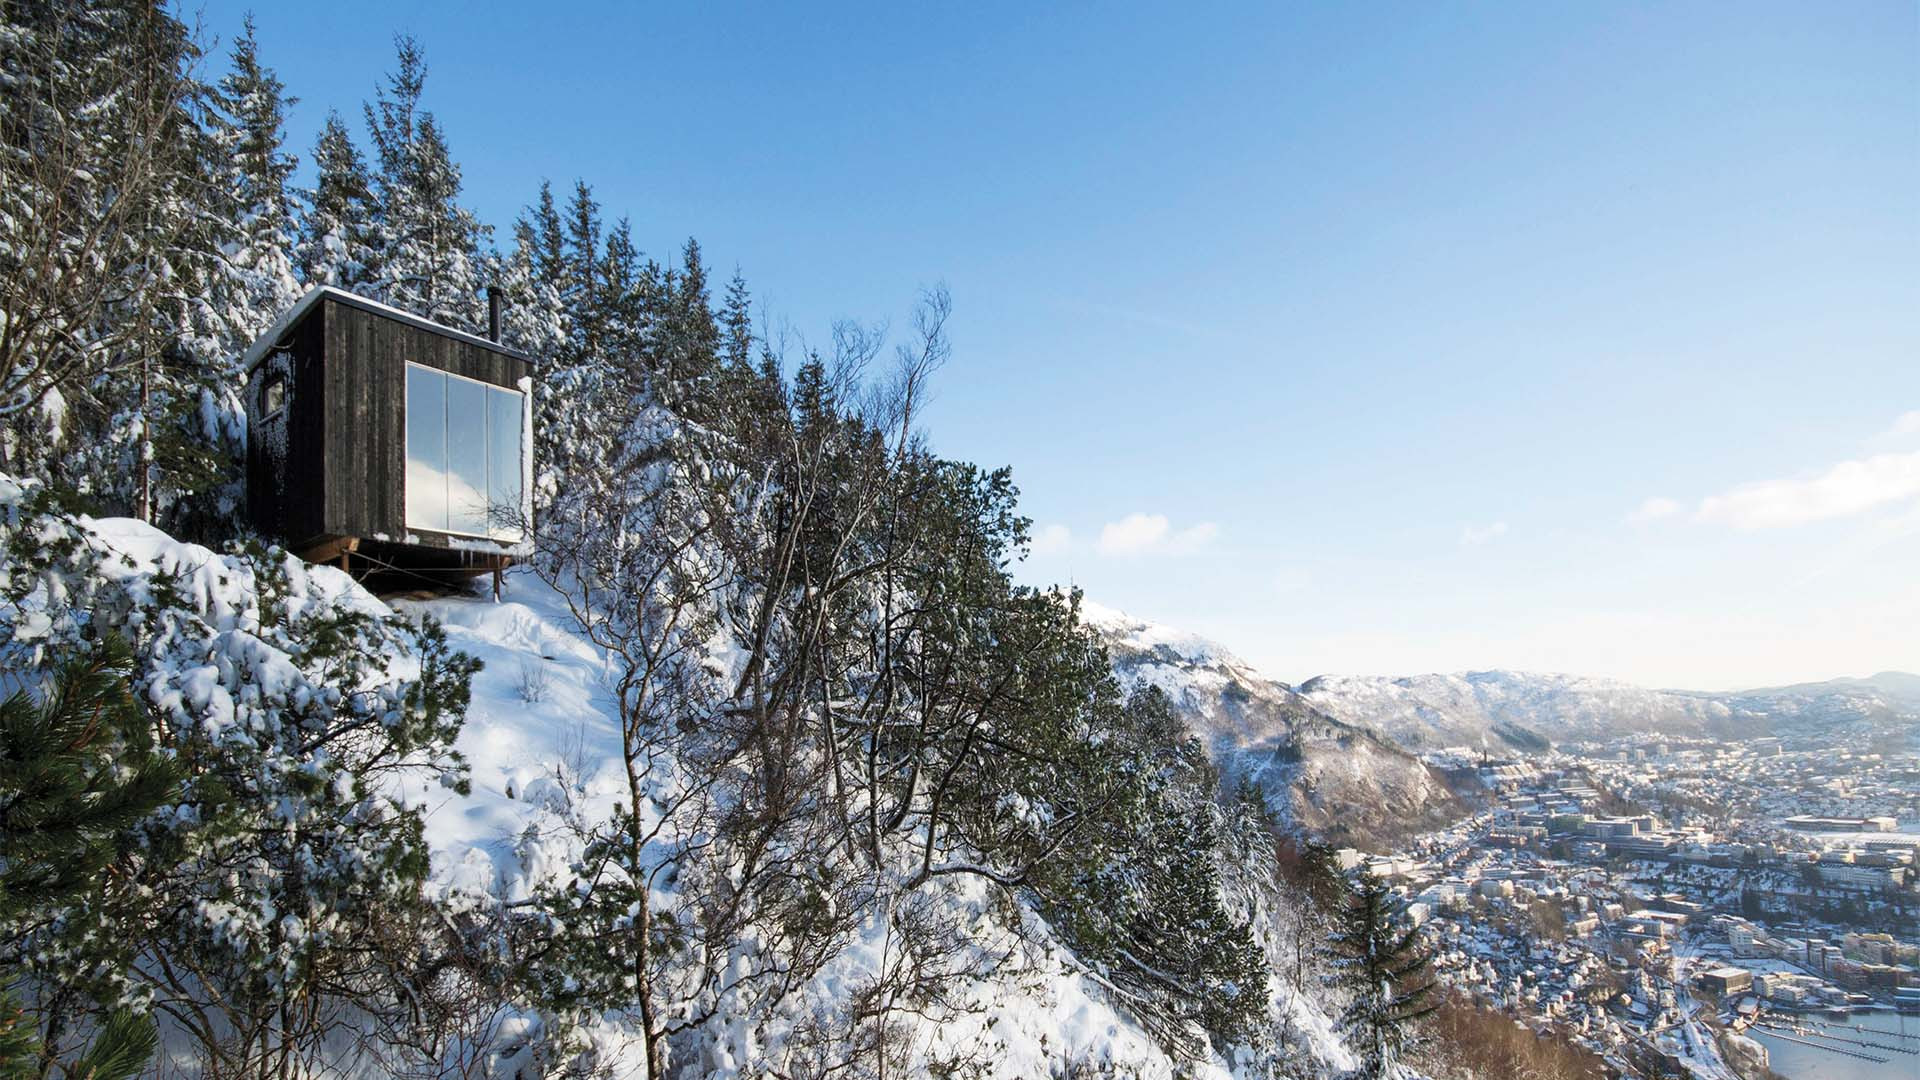 Tubakuba, a free-to-stay-at house on a mountain overlooking Bergen, Norway